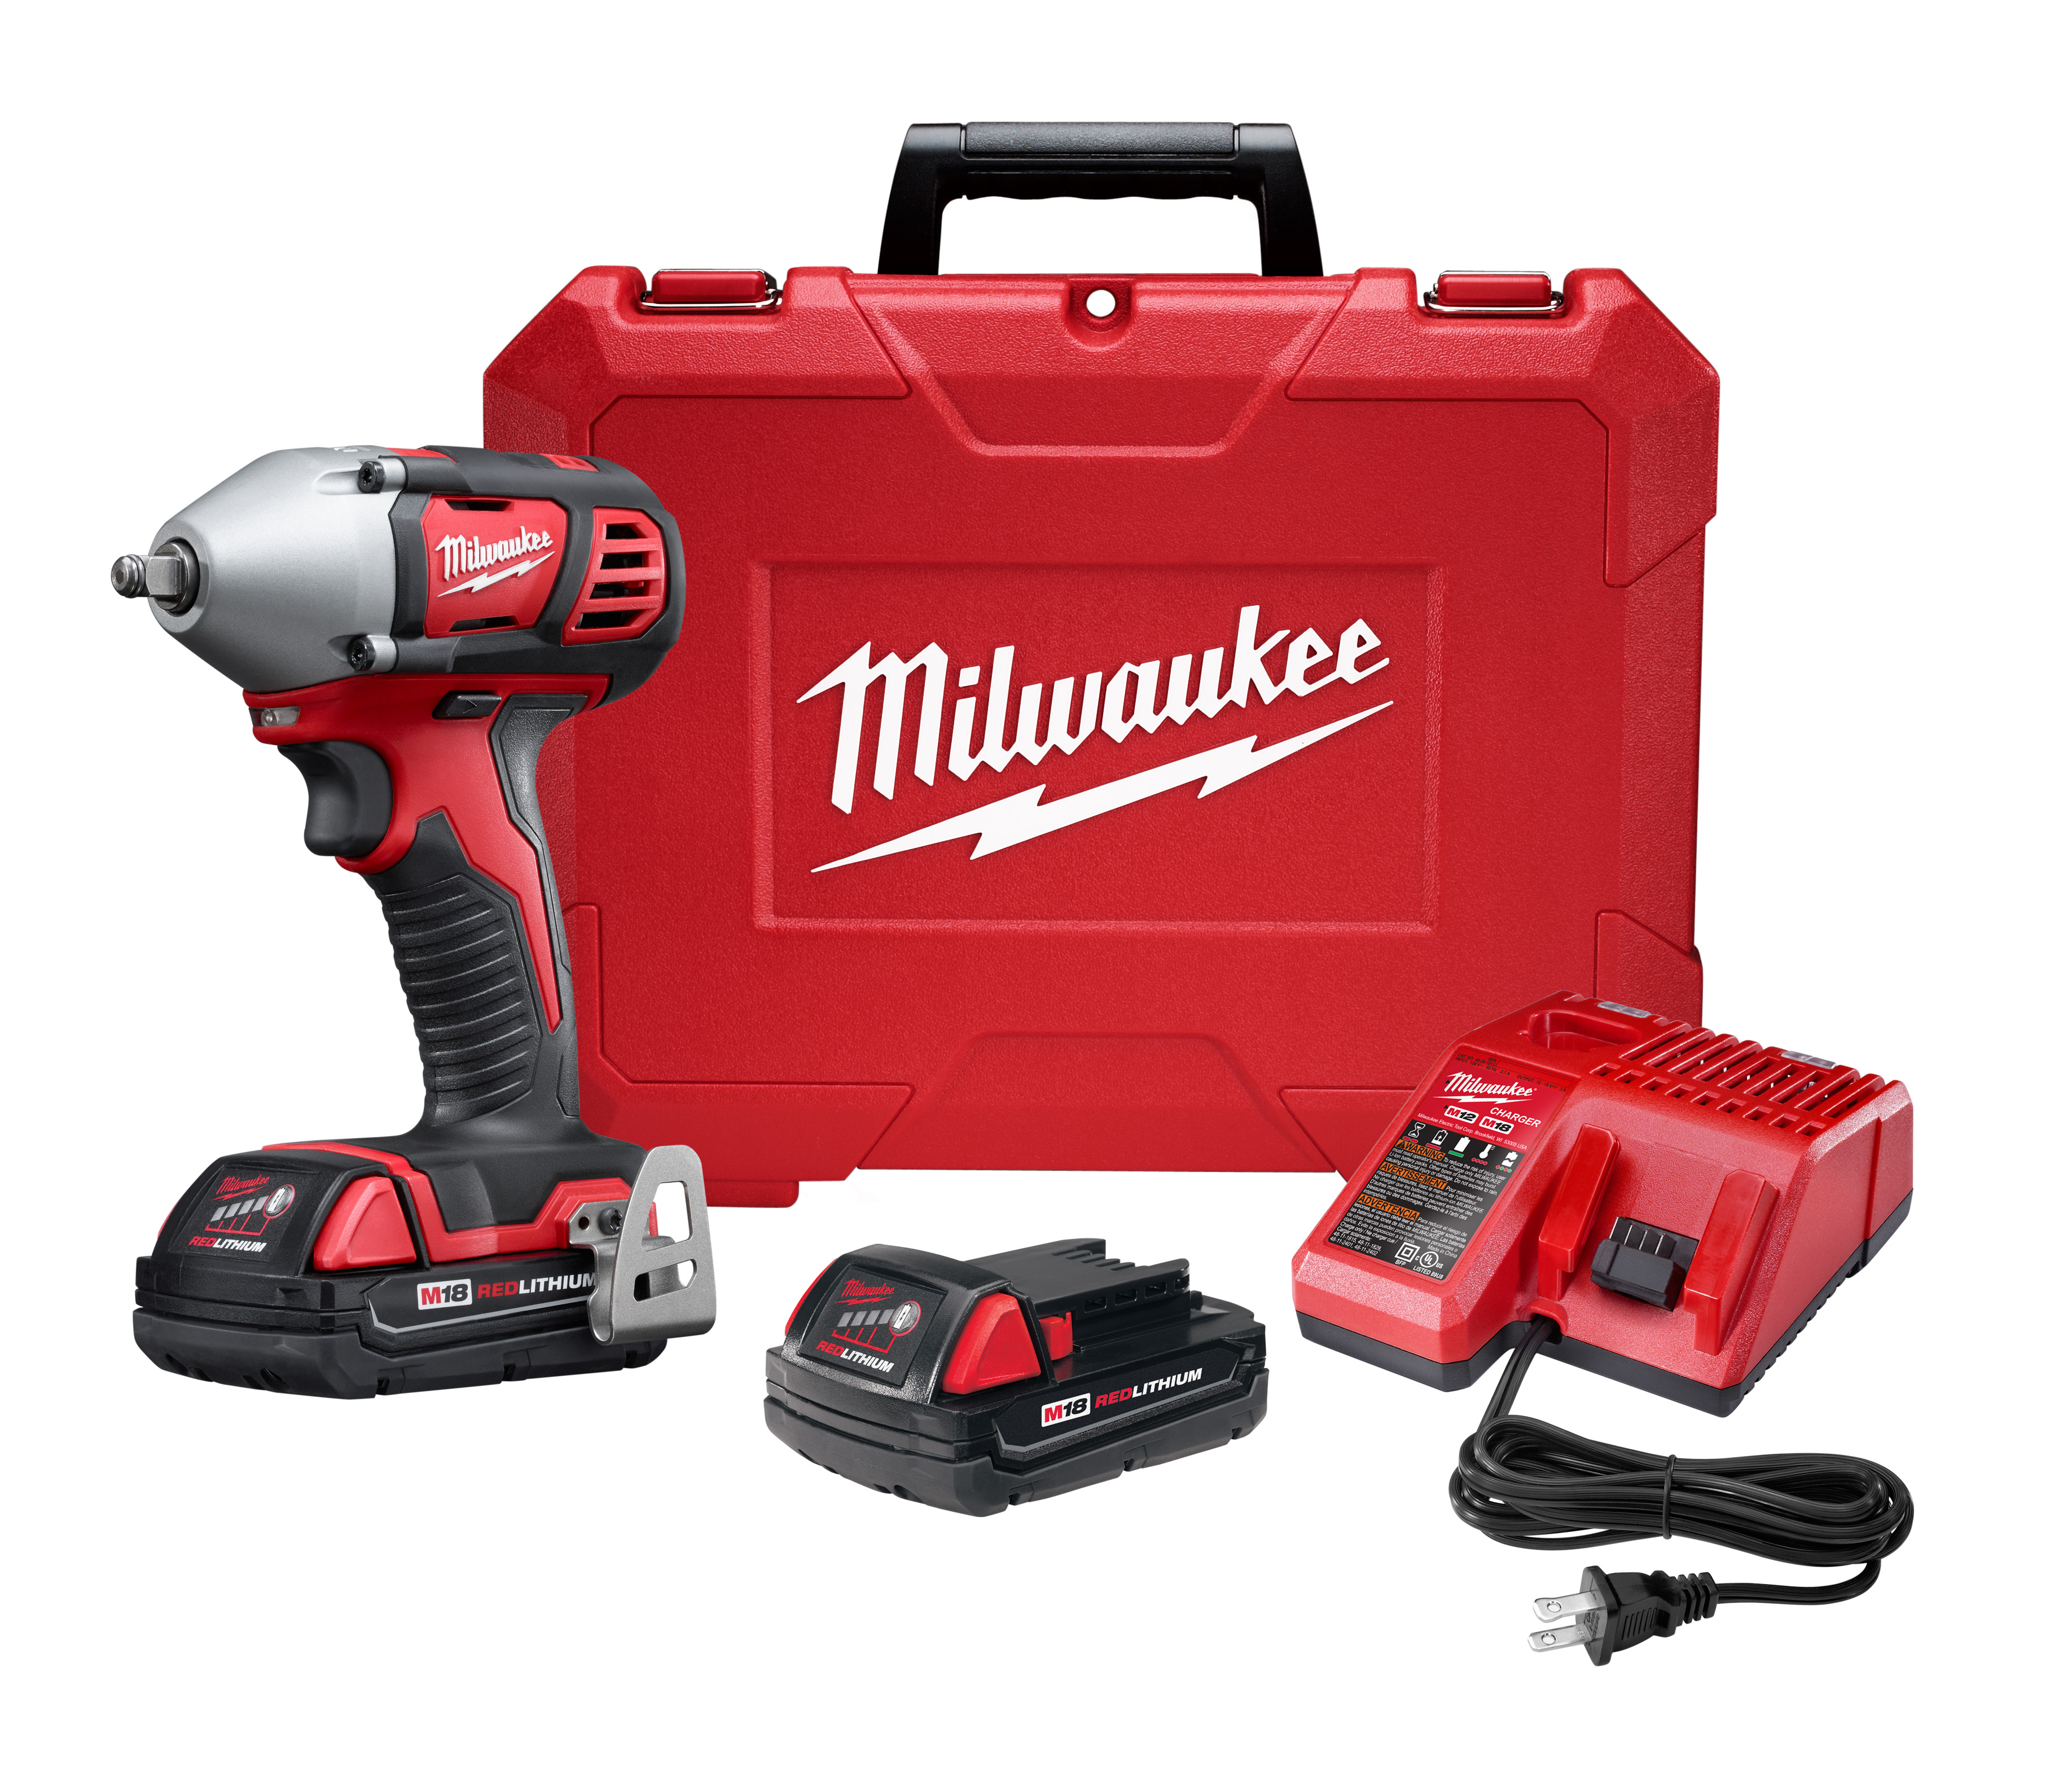 Milwaukee® M18™ 2658-22CT Compact Cordless Impact Wrench Kit With Friction Ring, 3/8 in Straight Drive, 3350 bpm, 167 ft-lb Torque, 18 VDC, 6 in OAL